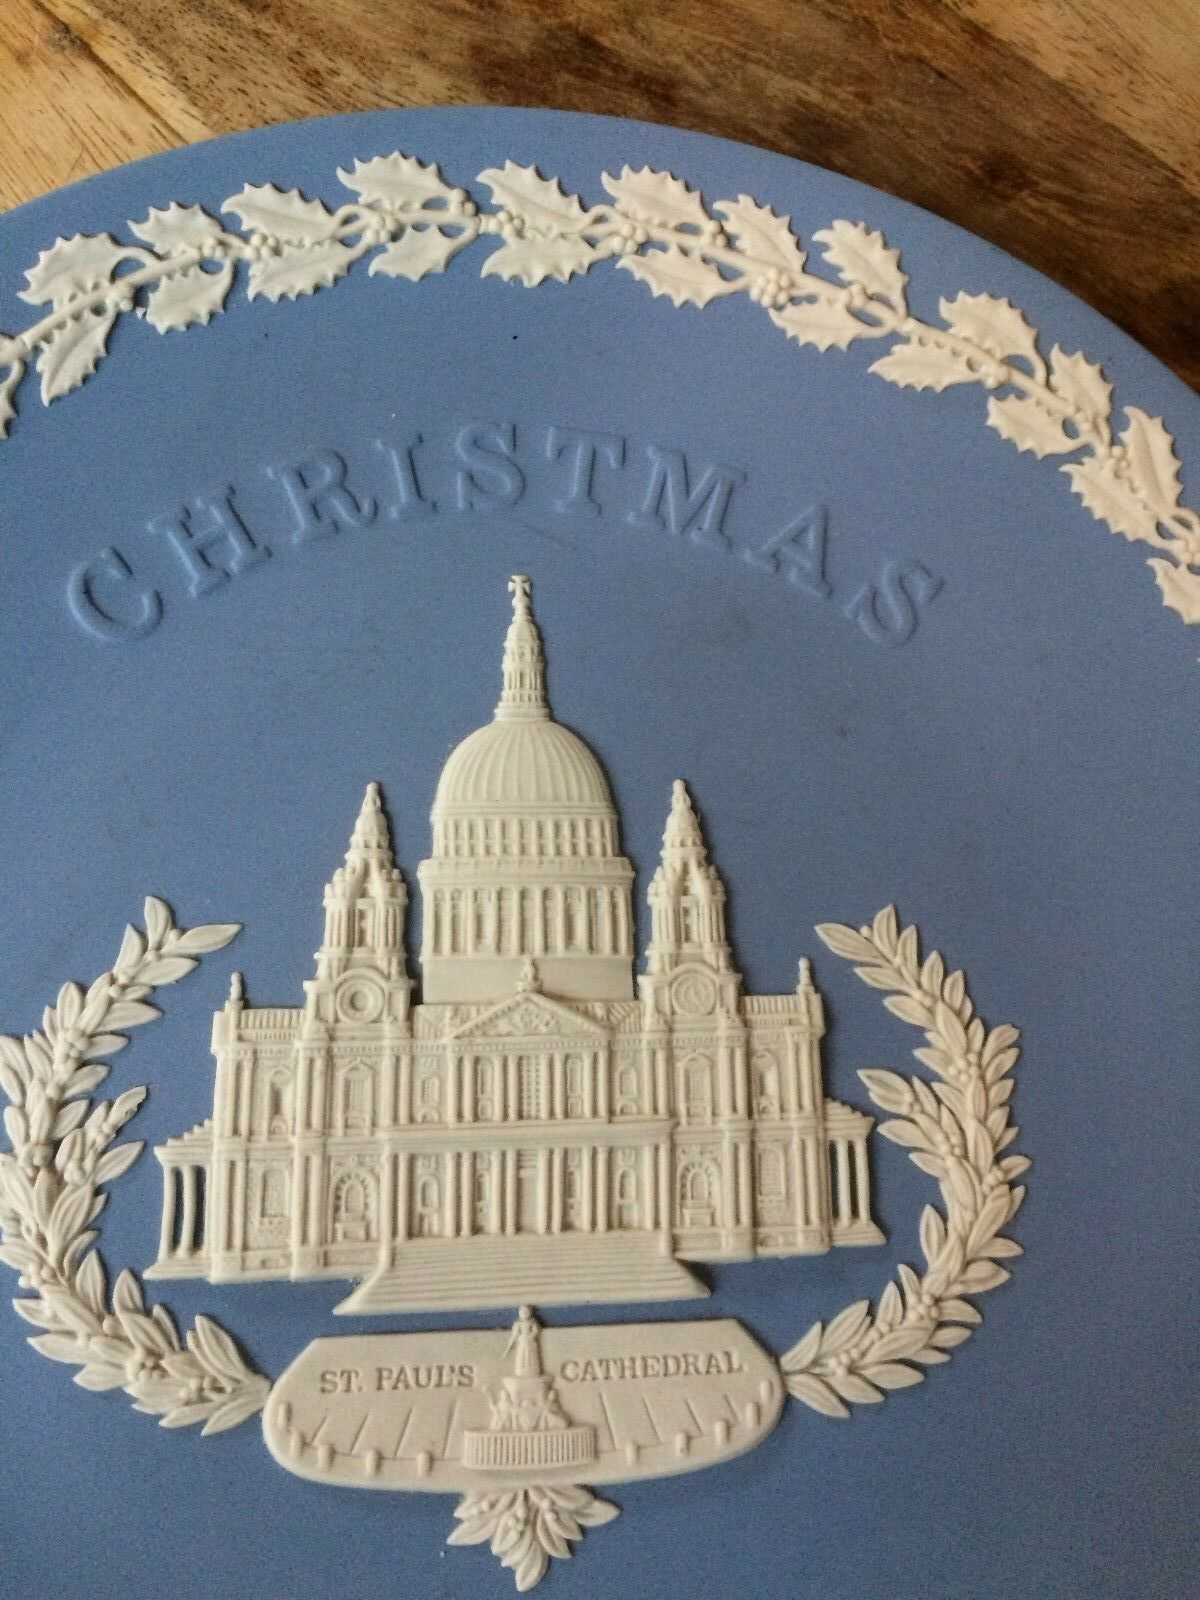 Image 3 - Wedgwood Jasper Ware Blue plate Christmas 1972 - St Paul's Cathedral